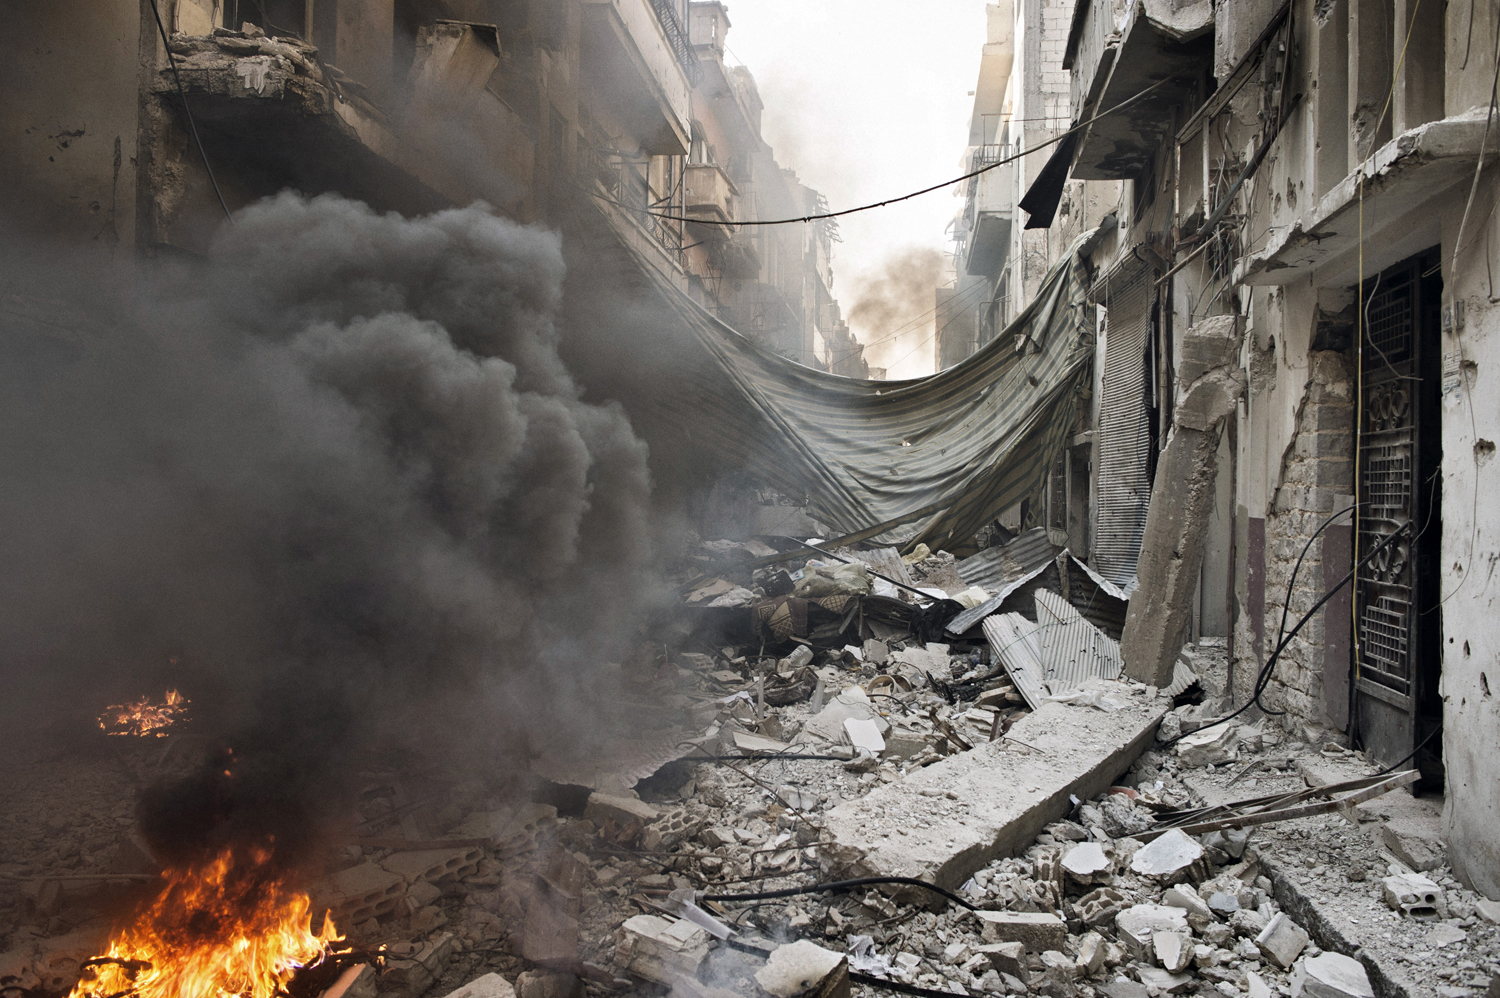 A street in the Qabaris neighborhood of Homs lies in ruins. Government soldiers use small fires to melt the plastic from cables and wires stripped from destroyed buildings. They say it is to prevent the wires from being used for improvised explosive devices, but the copper within can also be sold for cash.  May 12, 2014.